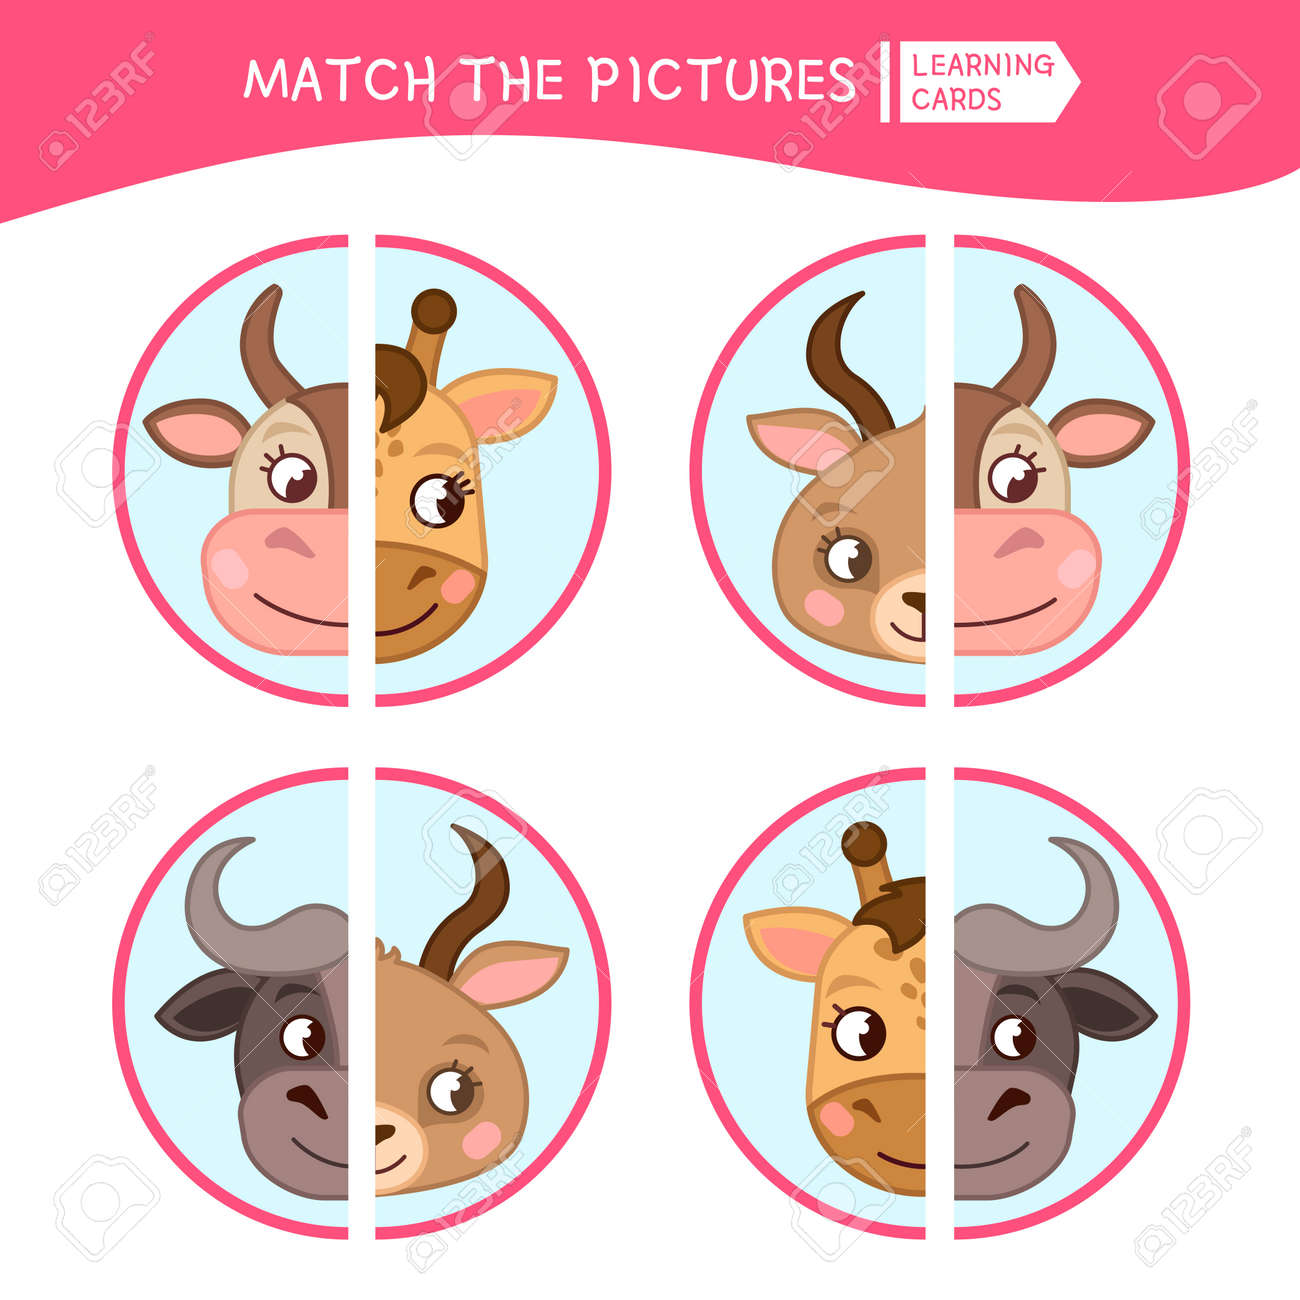 Matching Children Educational Game Match Parts Of Cartoon Animals Royalty Free Cliparts Vectors And Stock Illustration Image 111334657